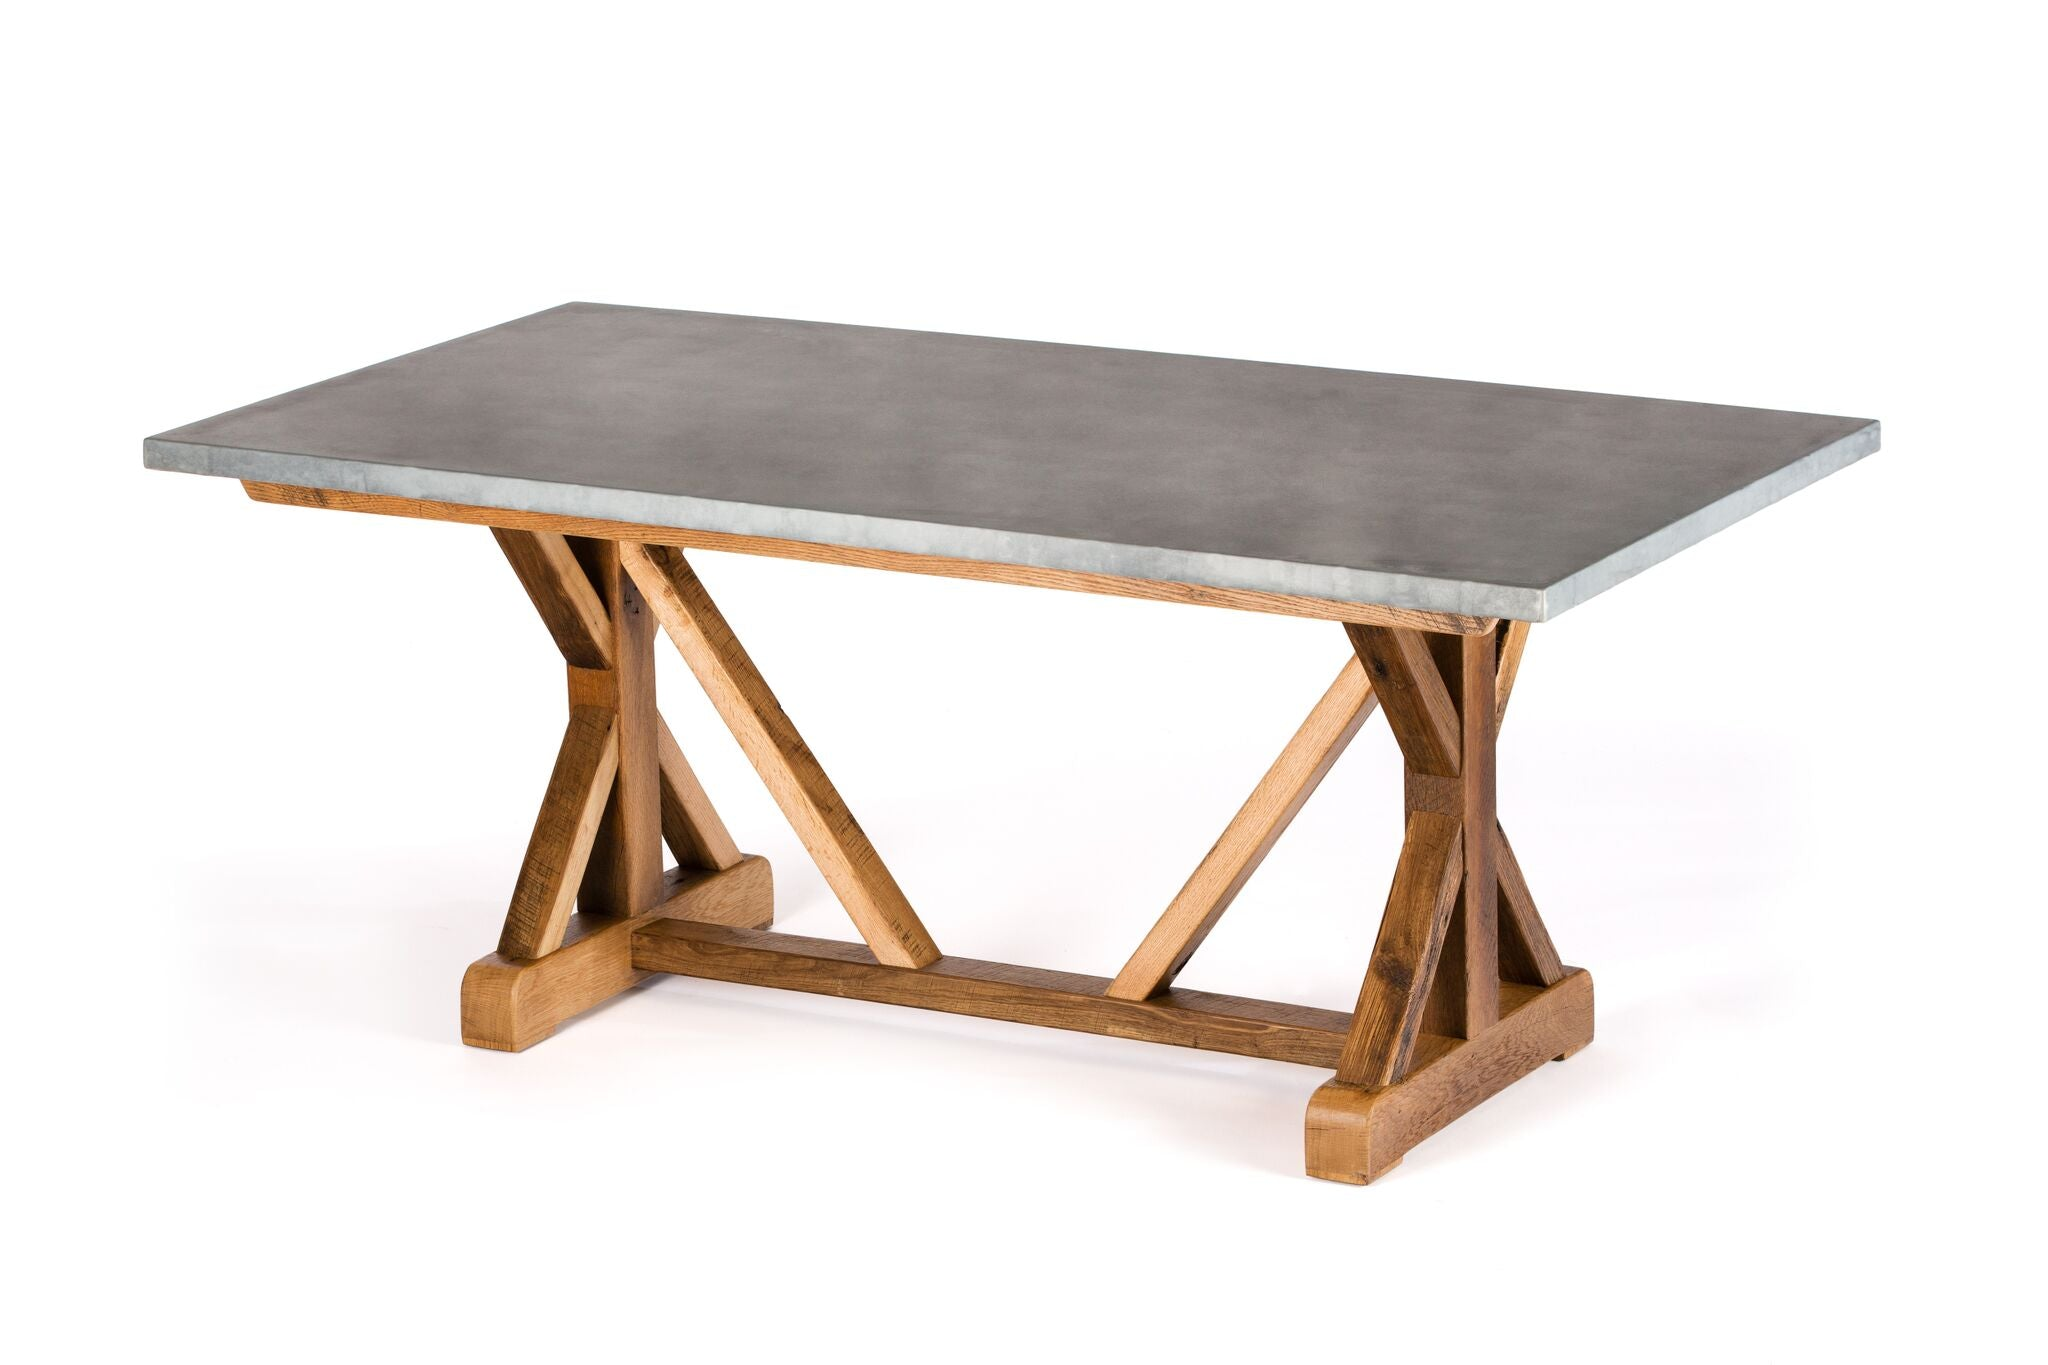 "Zinc Rectangular Table | French Trestle Table | CLASSIC | White Wash on Reclaimed Oak | 72""L 37""W 30""H 